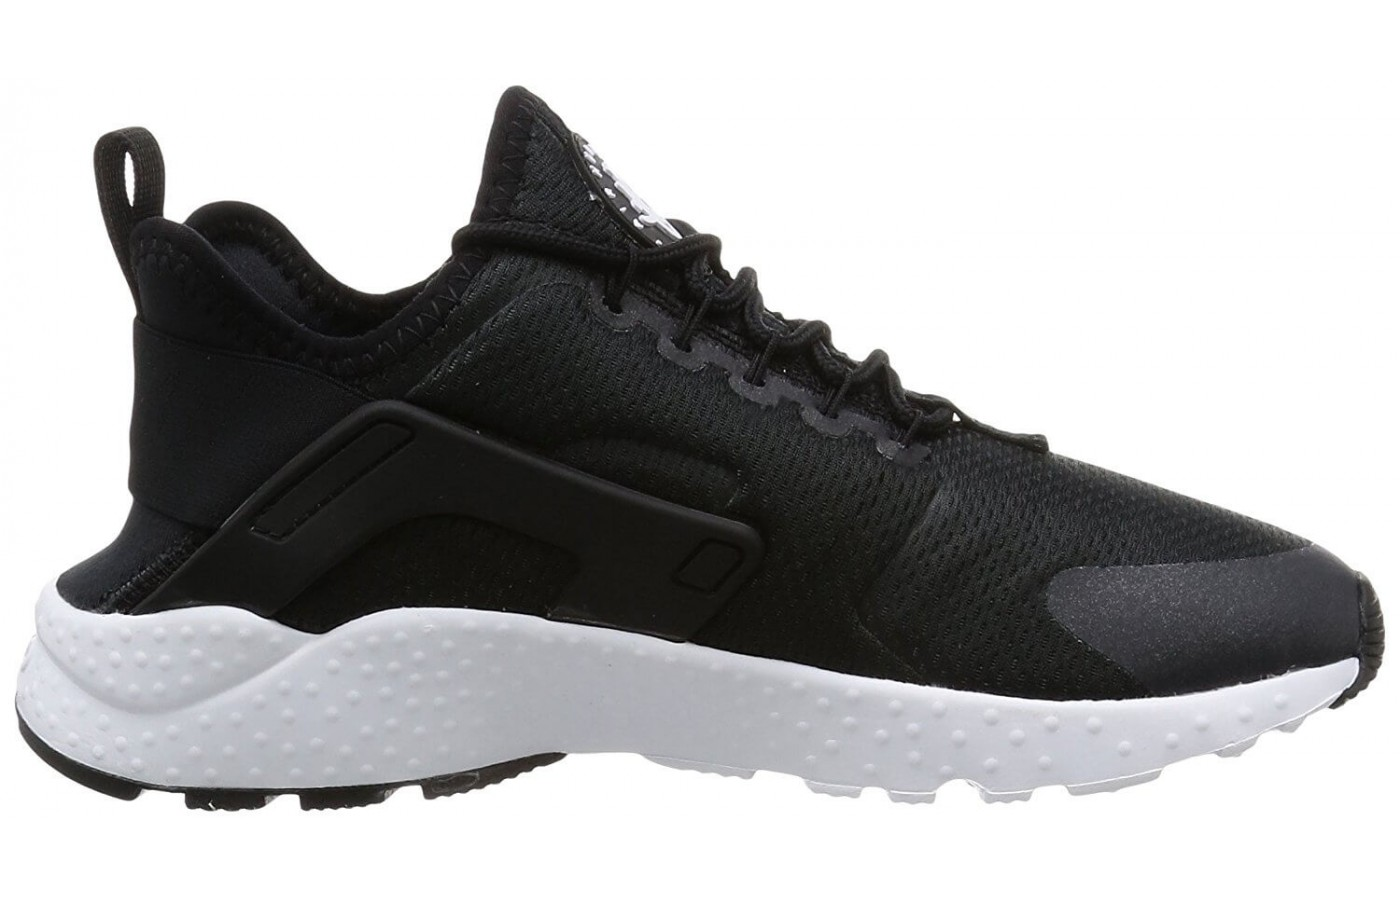 7e2f76d0ddf0 ... EVA cushioning in the midsole of the Nike Air Huarache Ultra provides  excellent support.